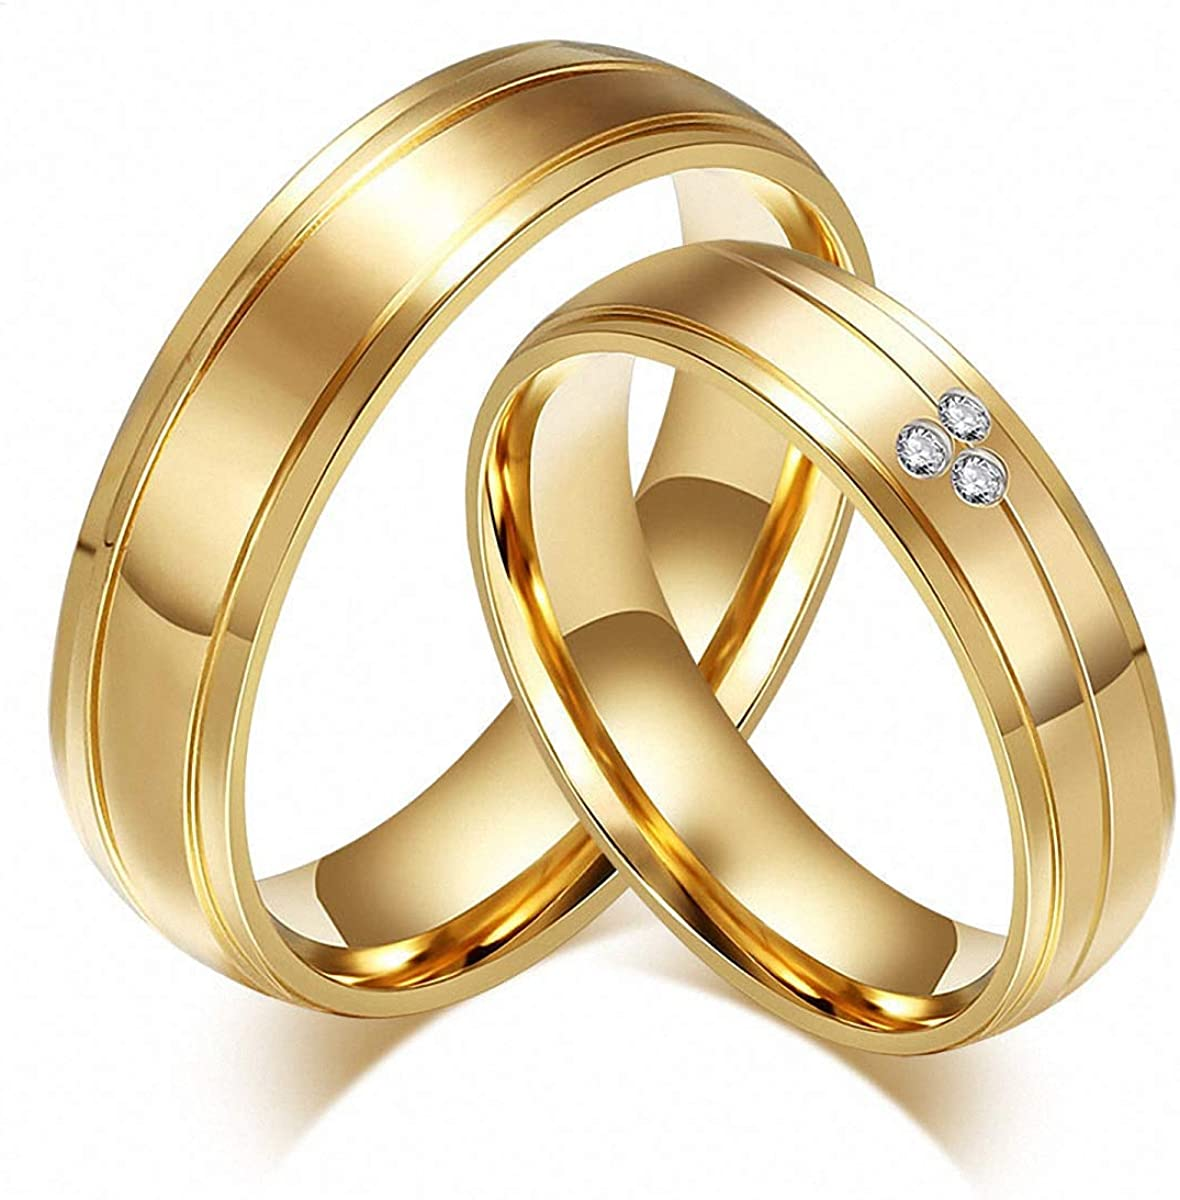 Amazon Com Cz Stone Wedding Rings Lover Stainless Steel Couple Rings Gold Couple Rings Women 10 Clothing